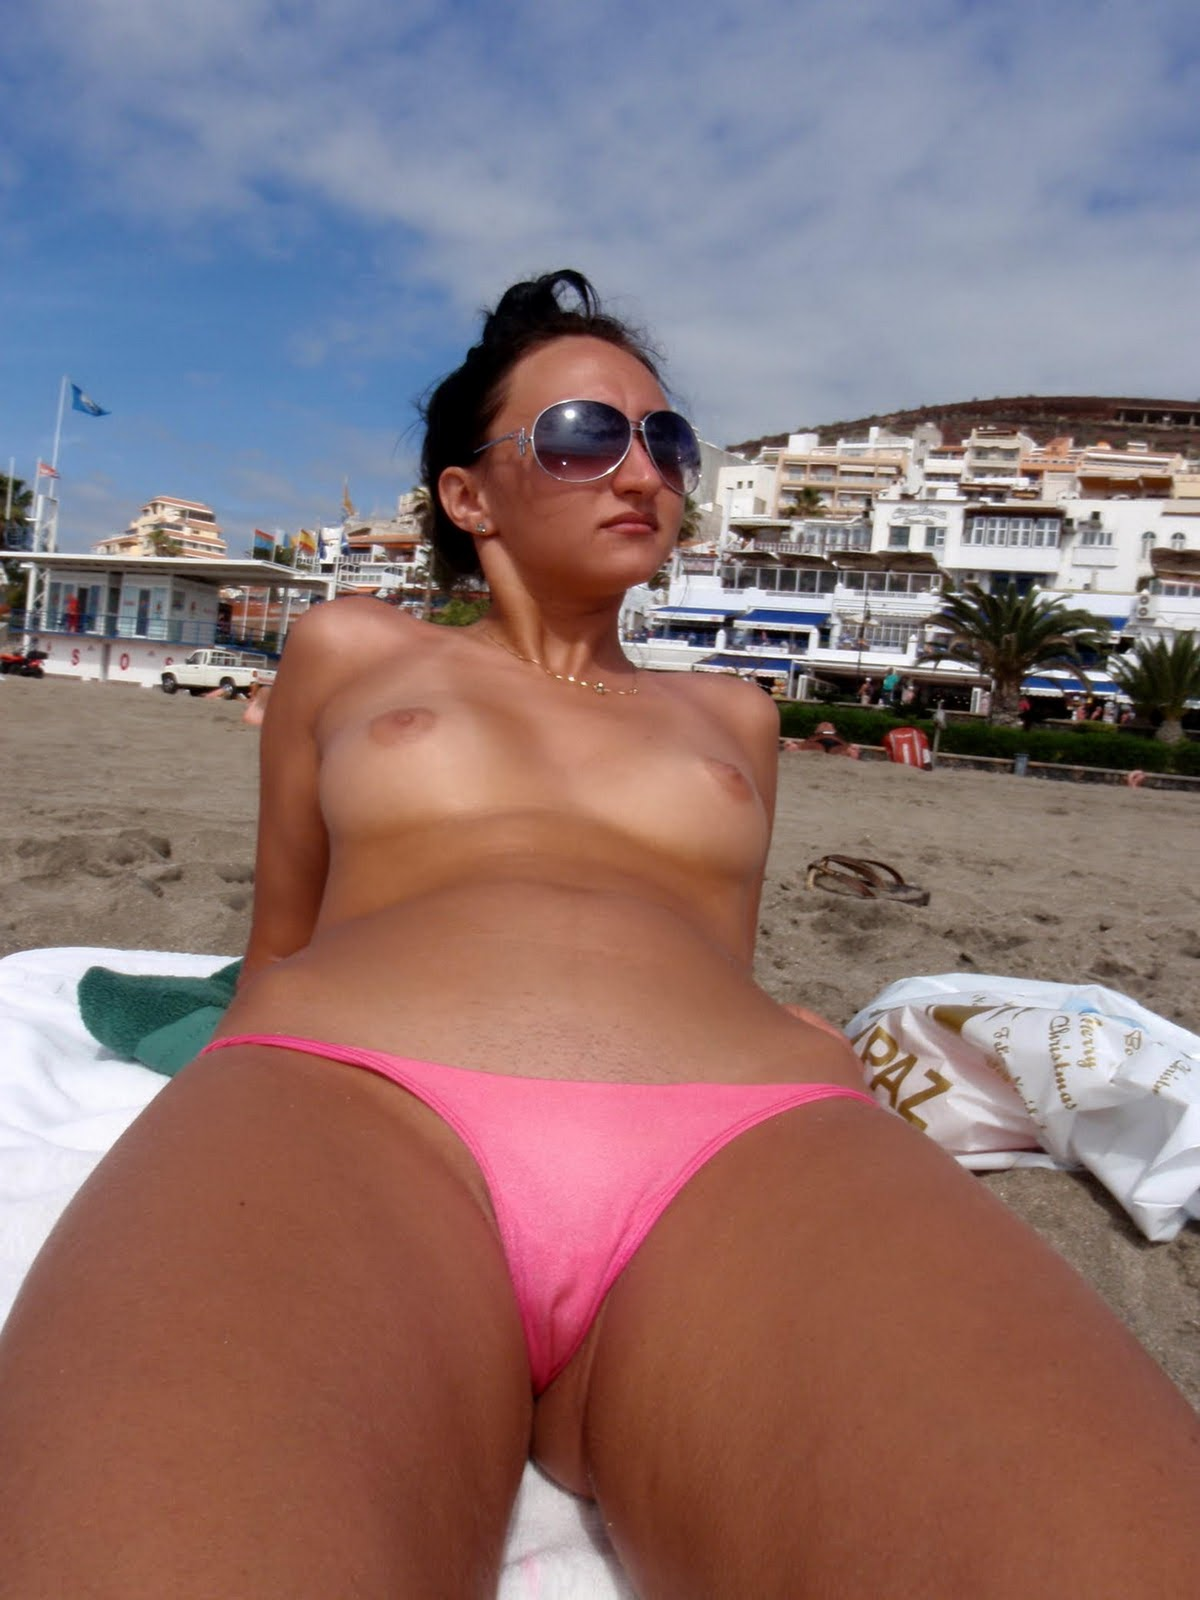 Sexy European Brunette Topless On Vacation At The Beach -1218